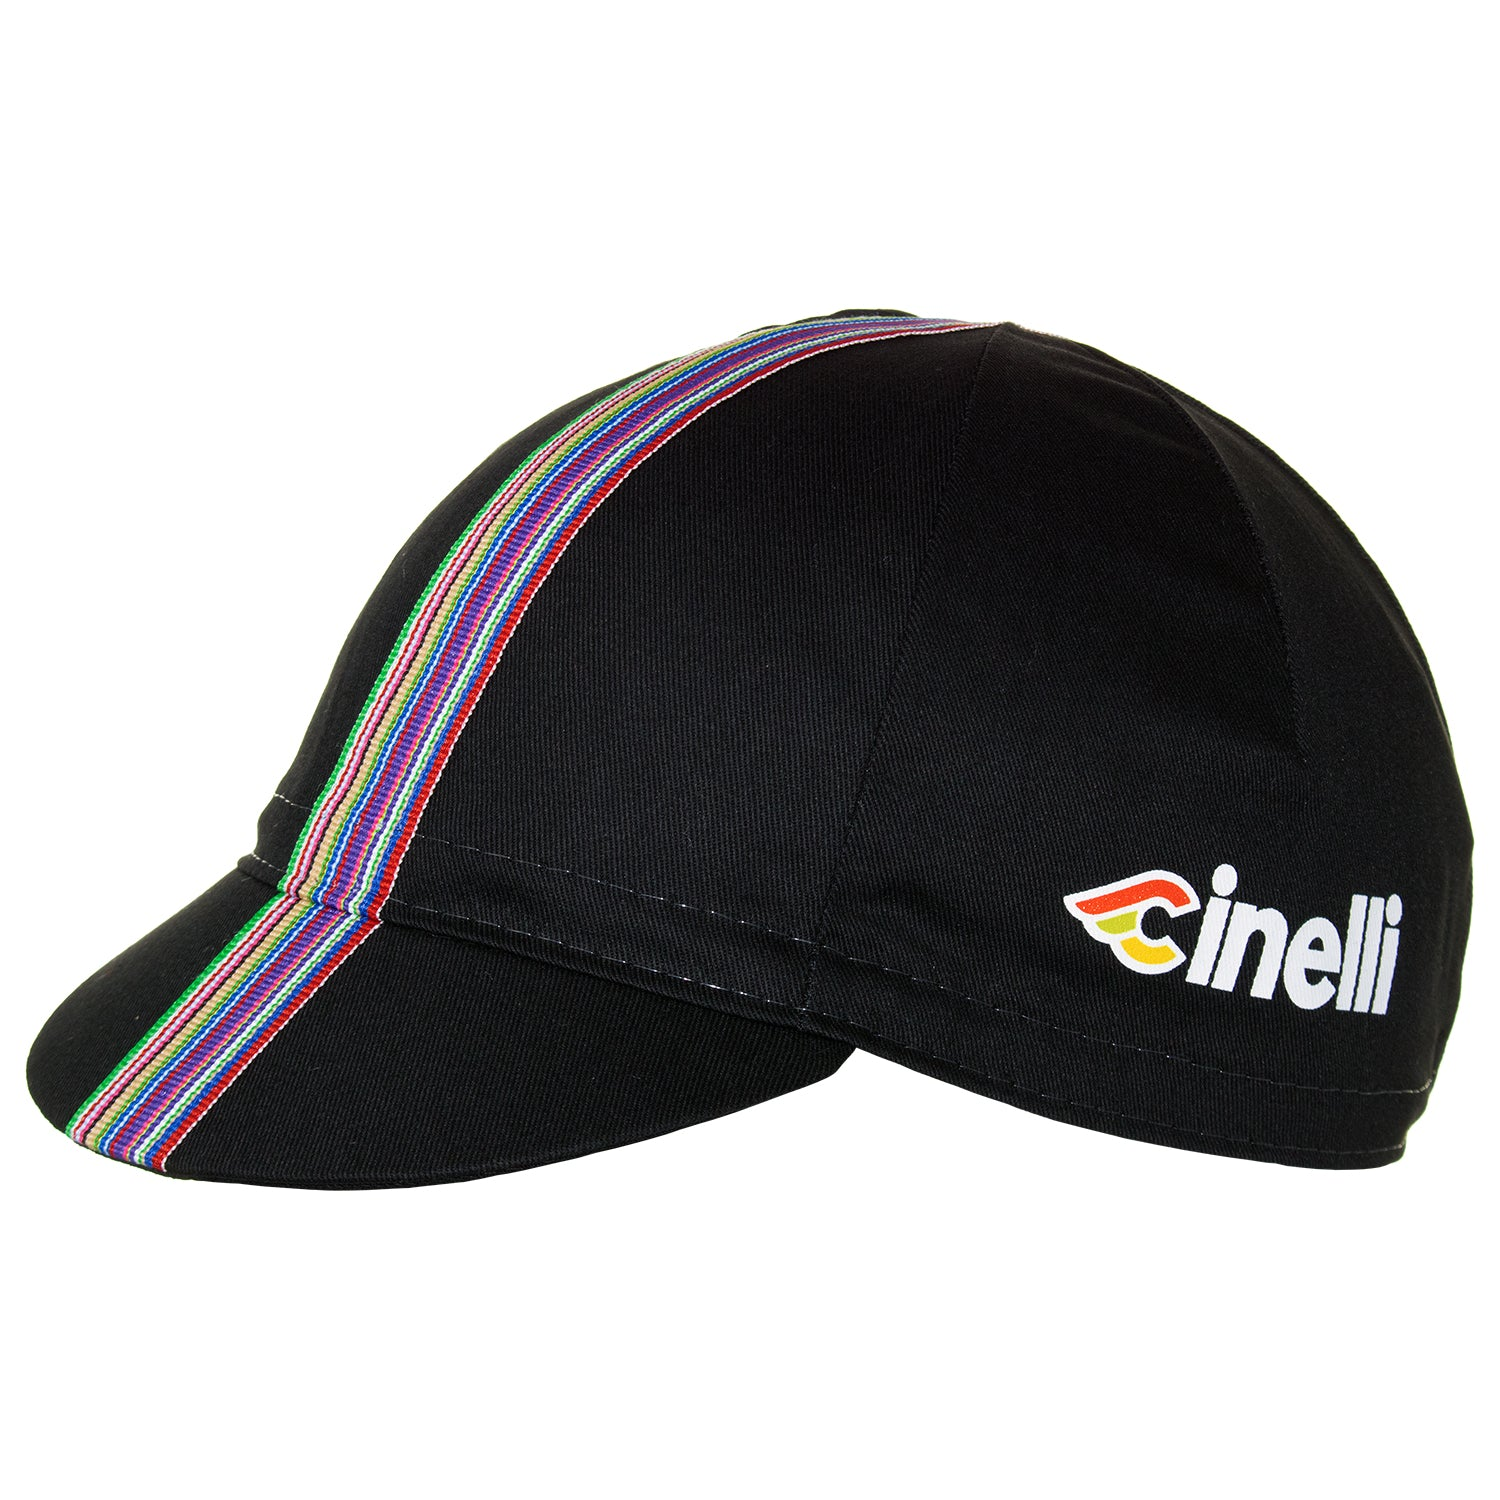 Side of the Cinelli Ciao Black Cotton Cycling Cap. The Cinelli logo is printed on the side and that wonderful multicoloured woven twill ribbon down the centre.